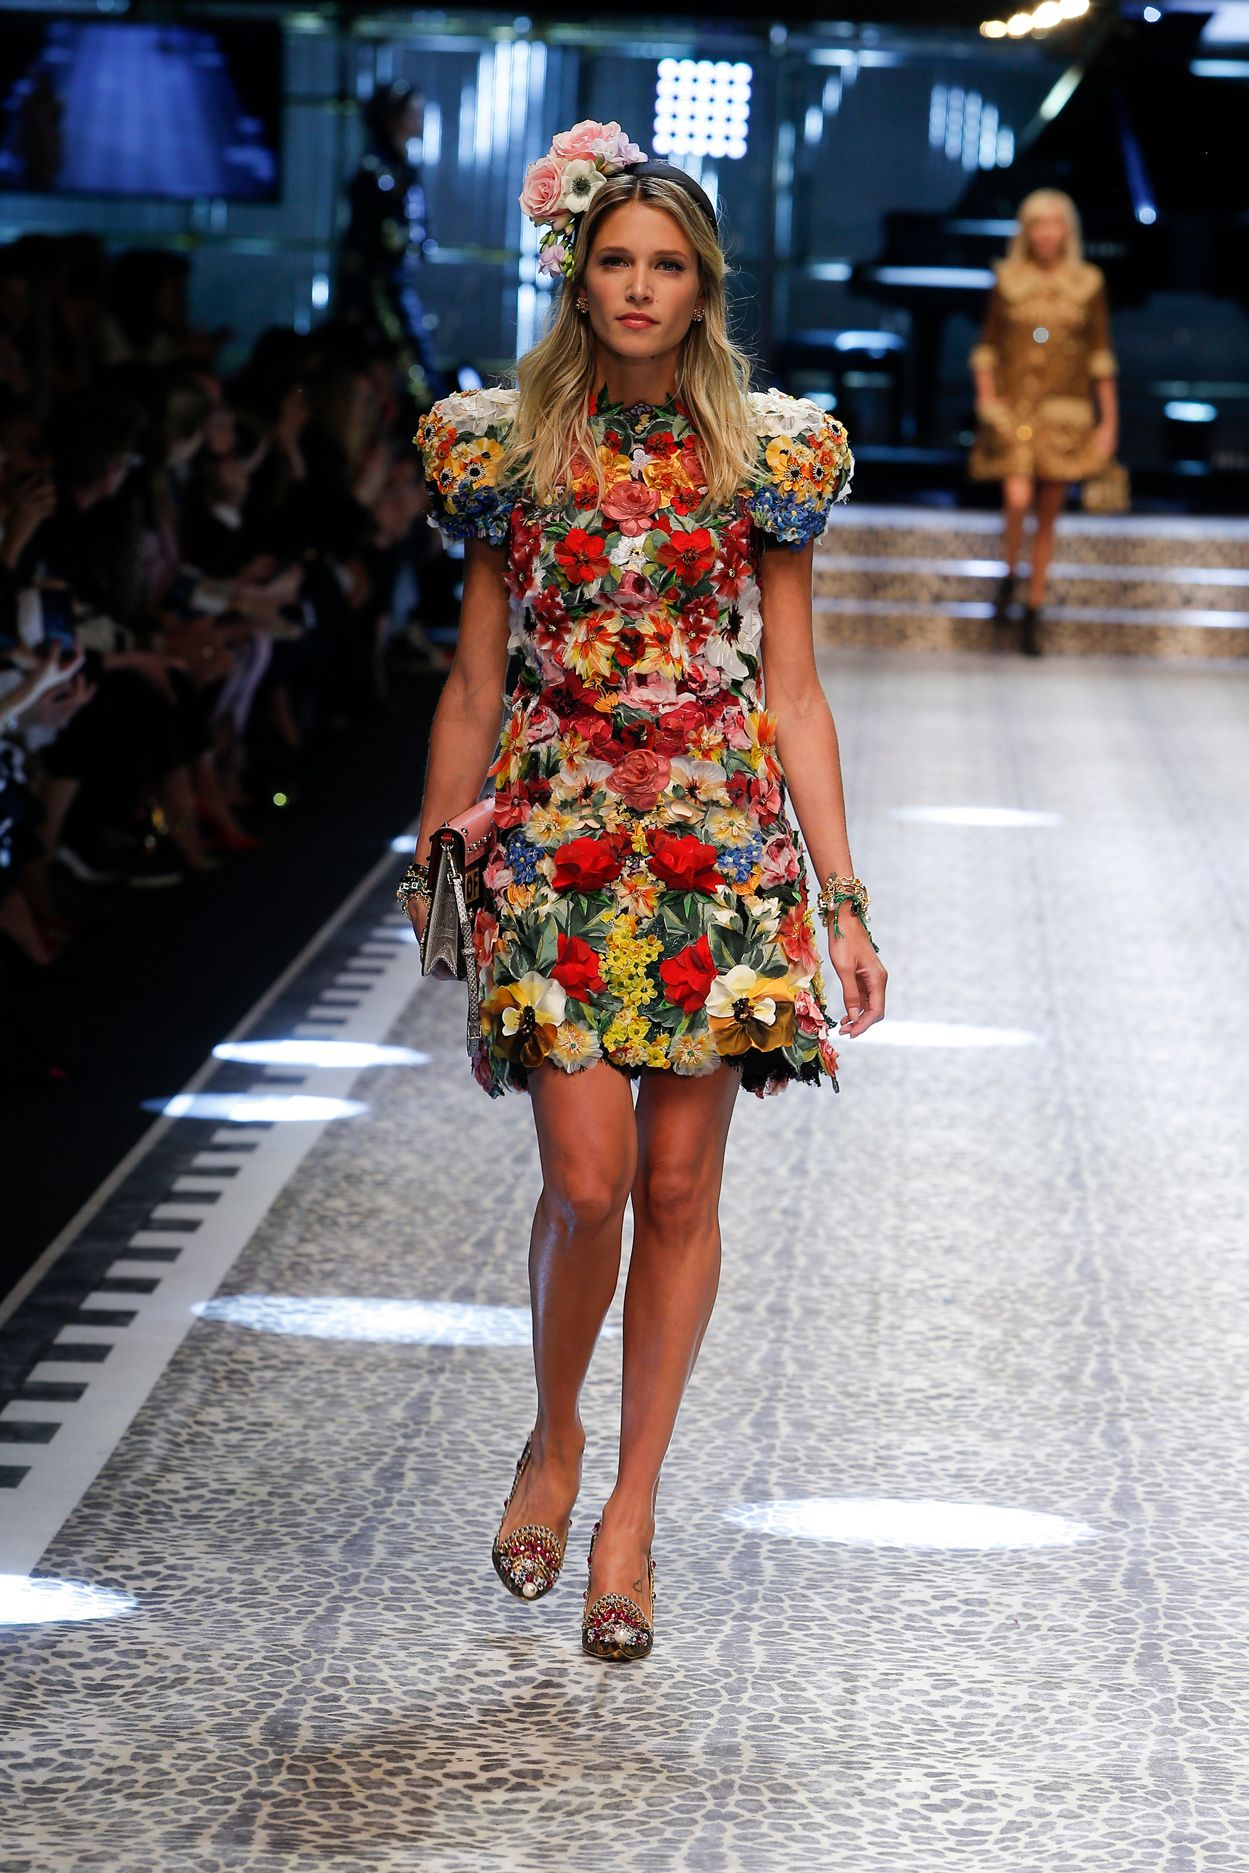 Video e foto dalla passerella del Fashion Show Dolce   Gabbana ... 11a2bcb2063